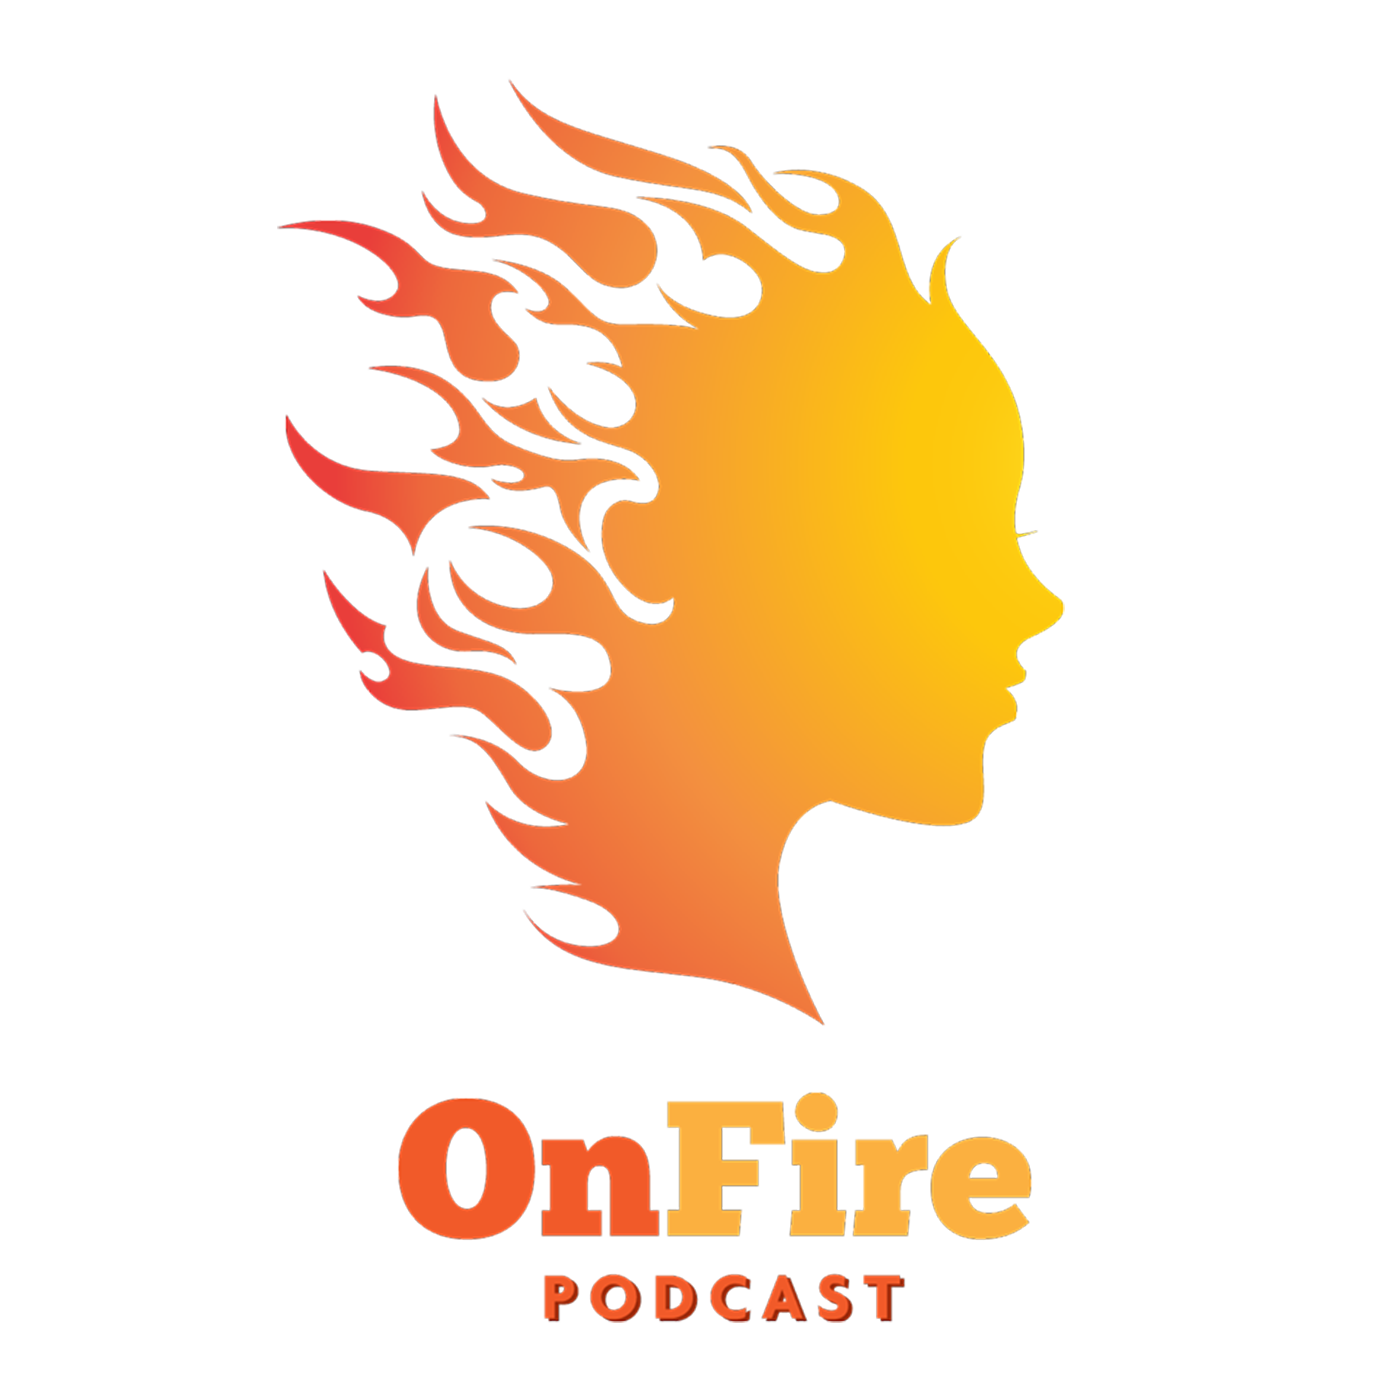 OnFire Podcast S2 E2 - The One With All The Vomit